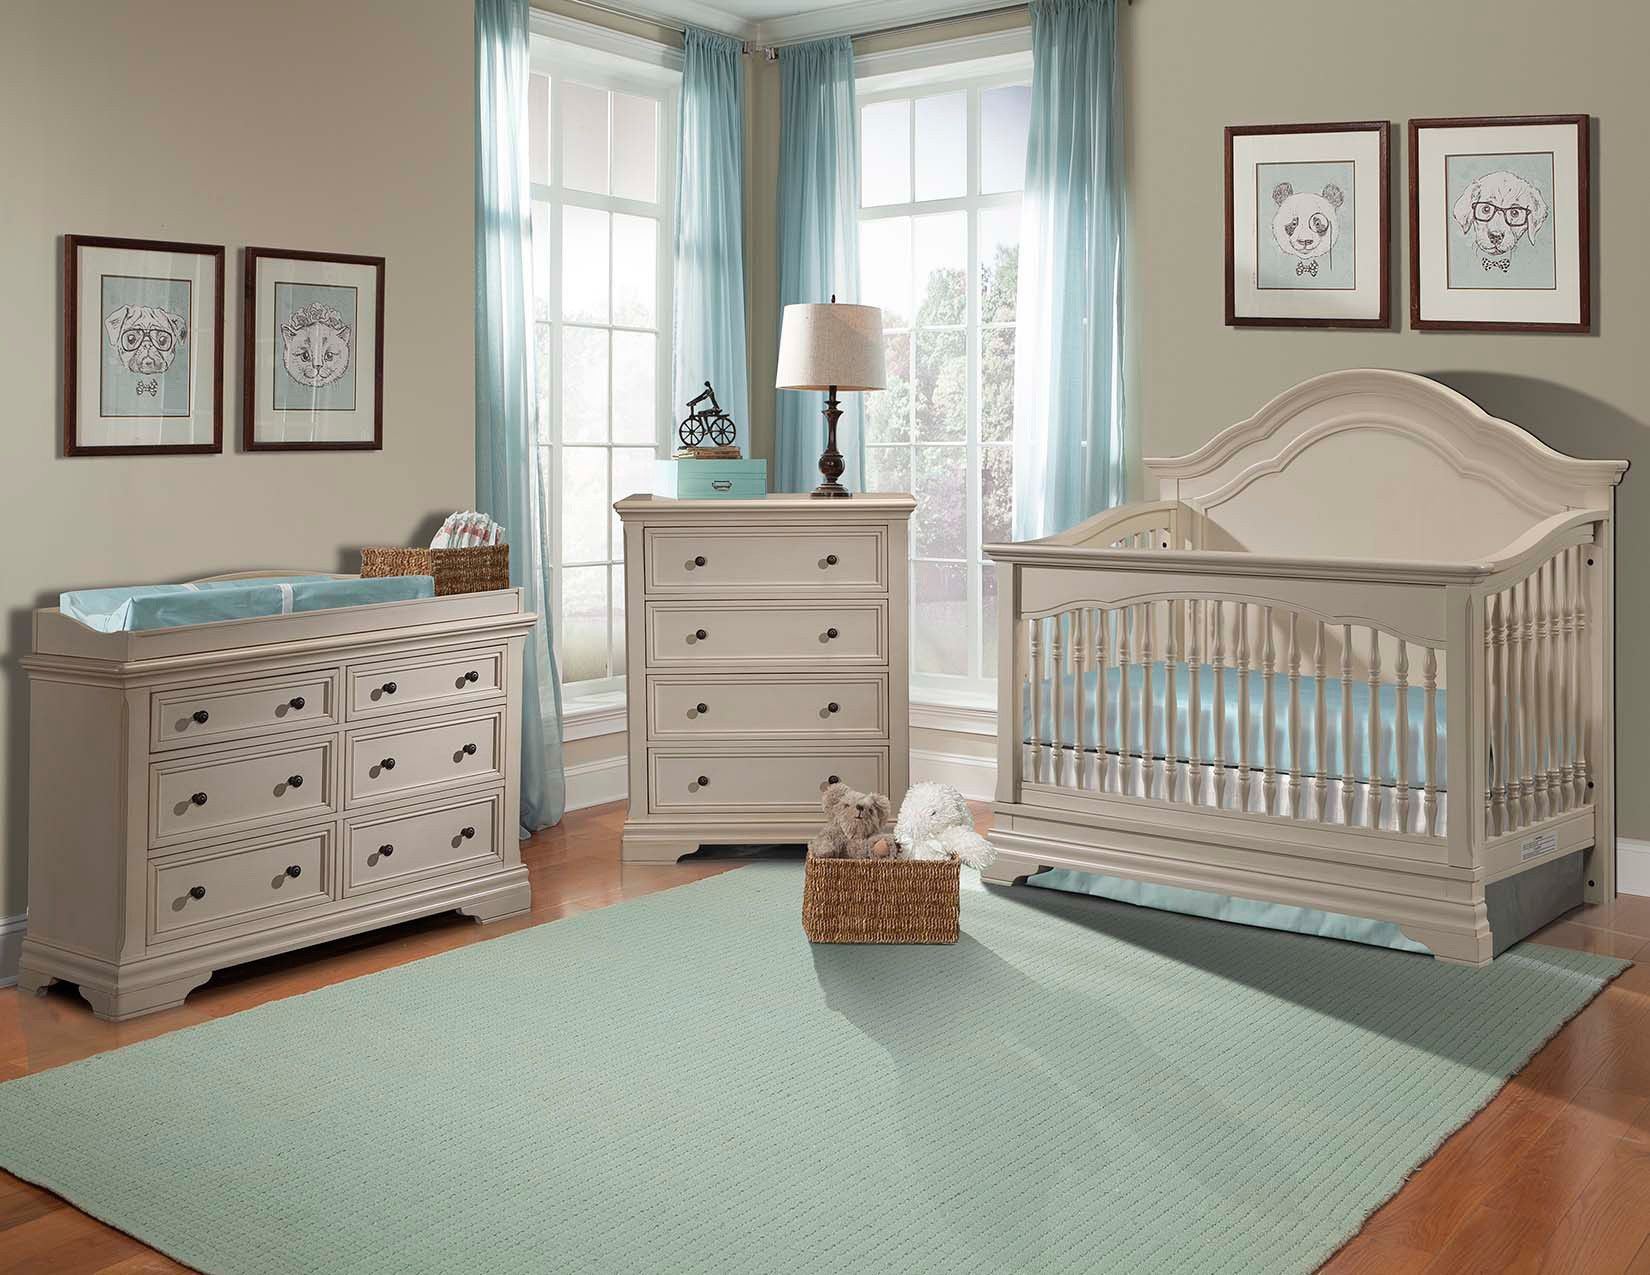 Stella Baby And Child Athena 3 Piece Nursery Set In Belgium Cream Baby Nursery Furniture Sets Baby Furniture Sets Nursery Furniture Sets